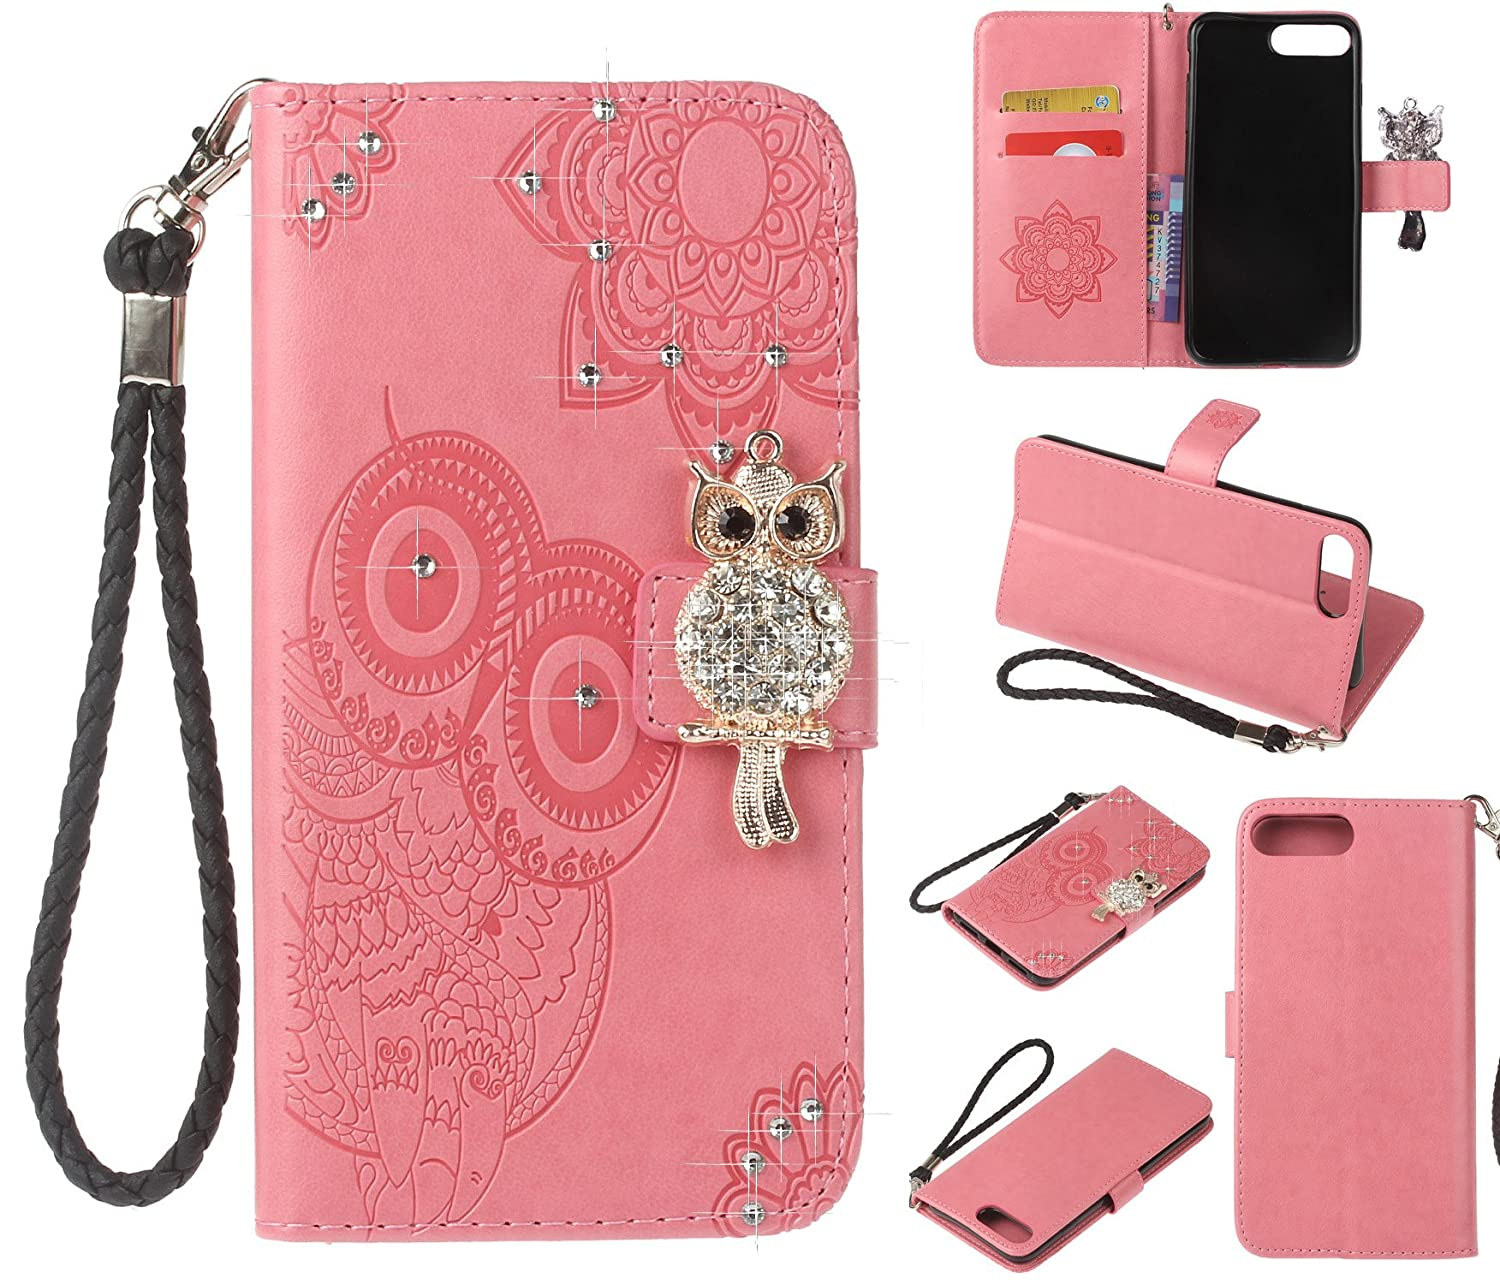 Iphone 7 Plus Caseiphone 8 Caseztongy Wallet Casing 4 4s Softcase Motif Owl Case Pu Leather Crystal Diamonds 3d Relief Flip Tpu Soft Shell With Credit Card